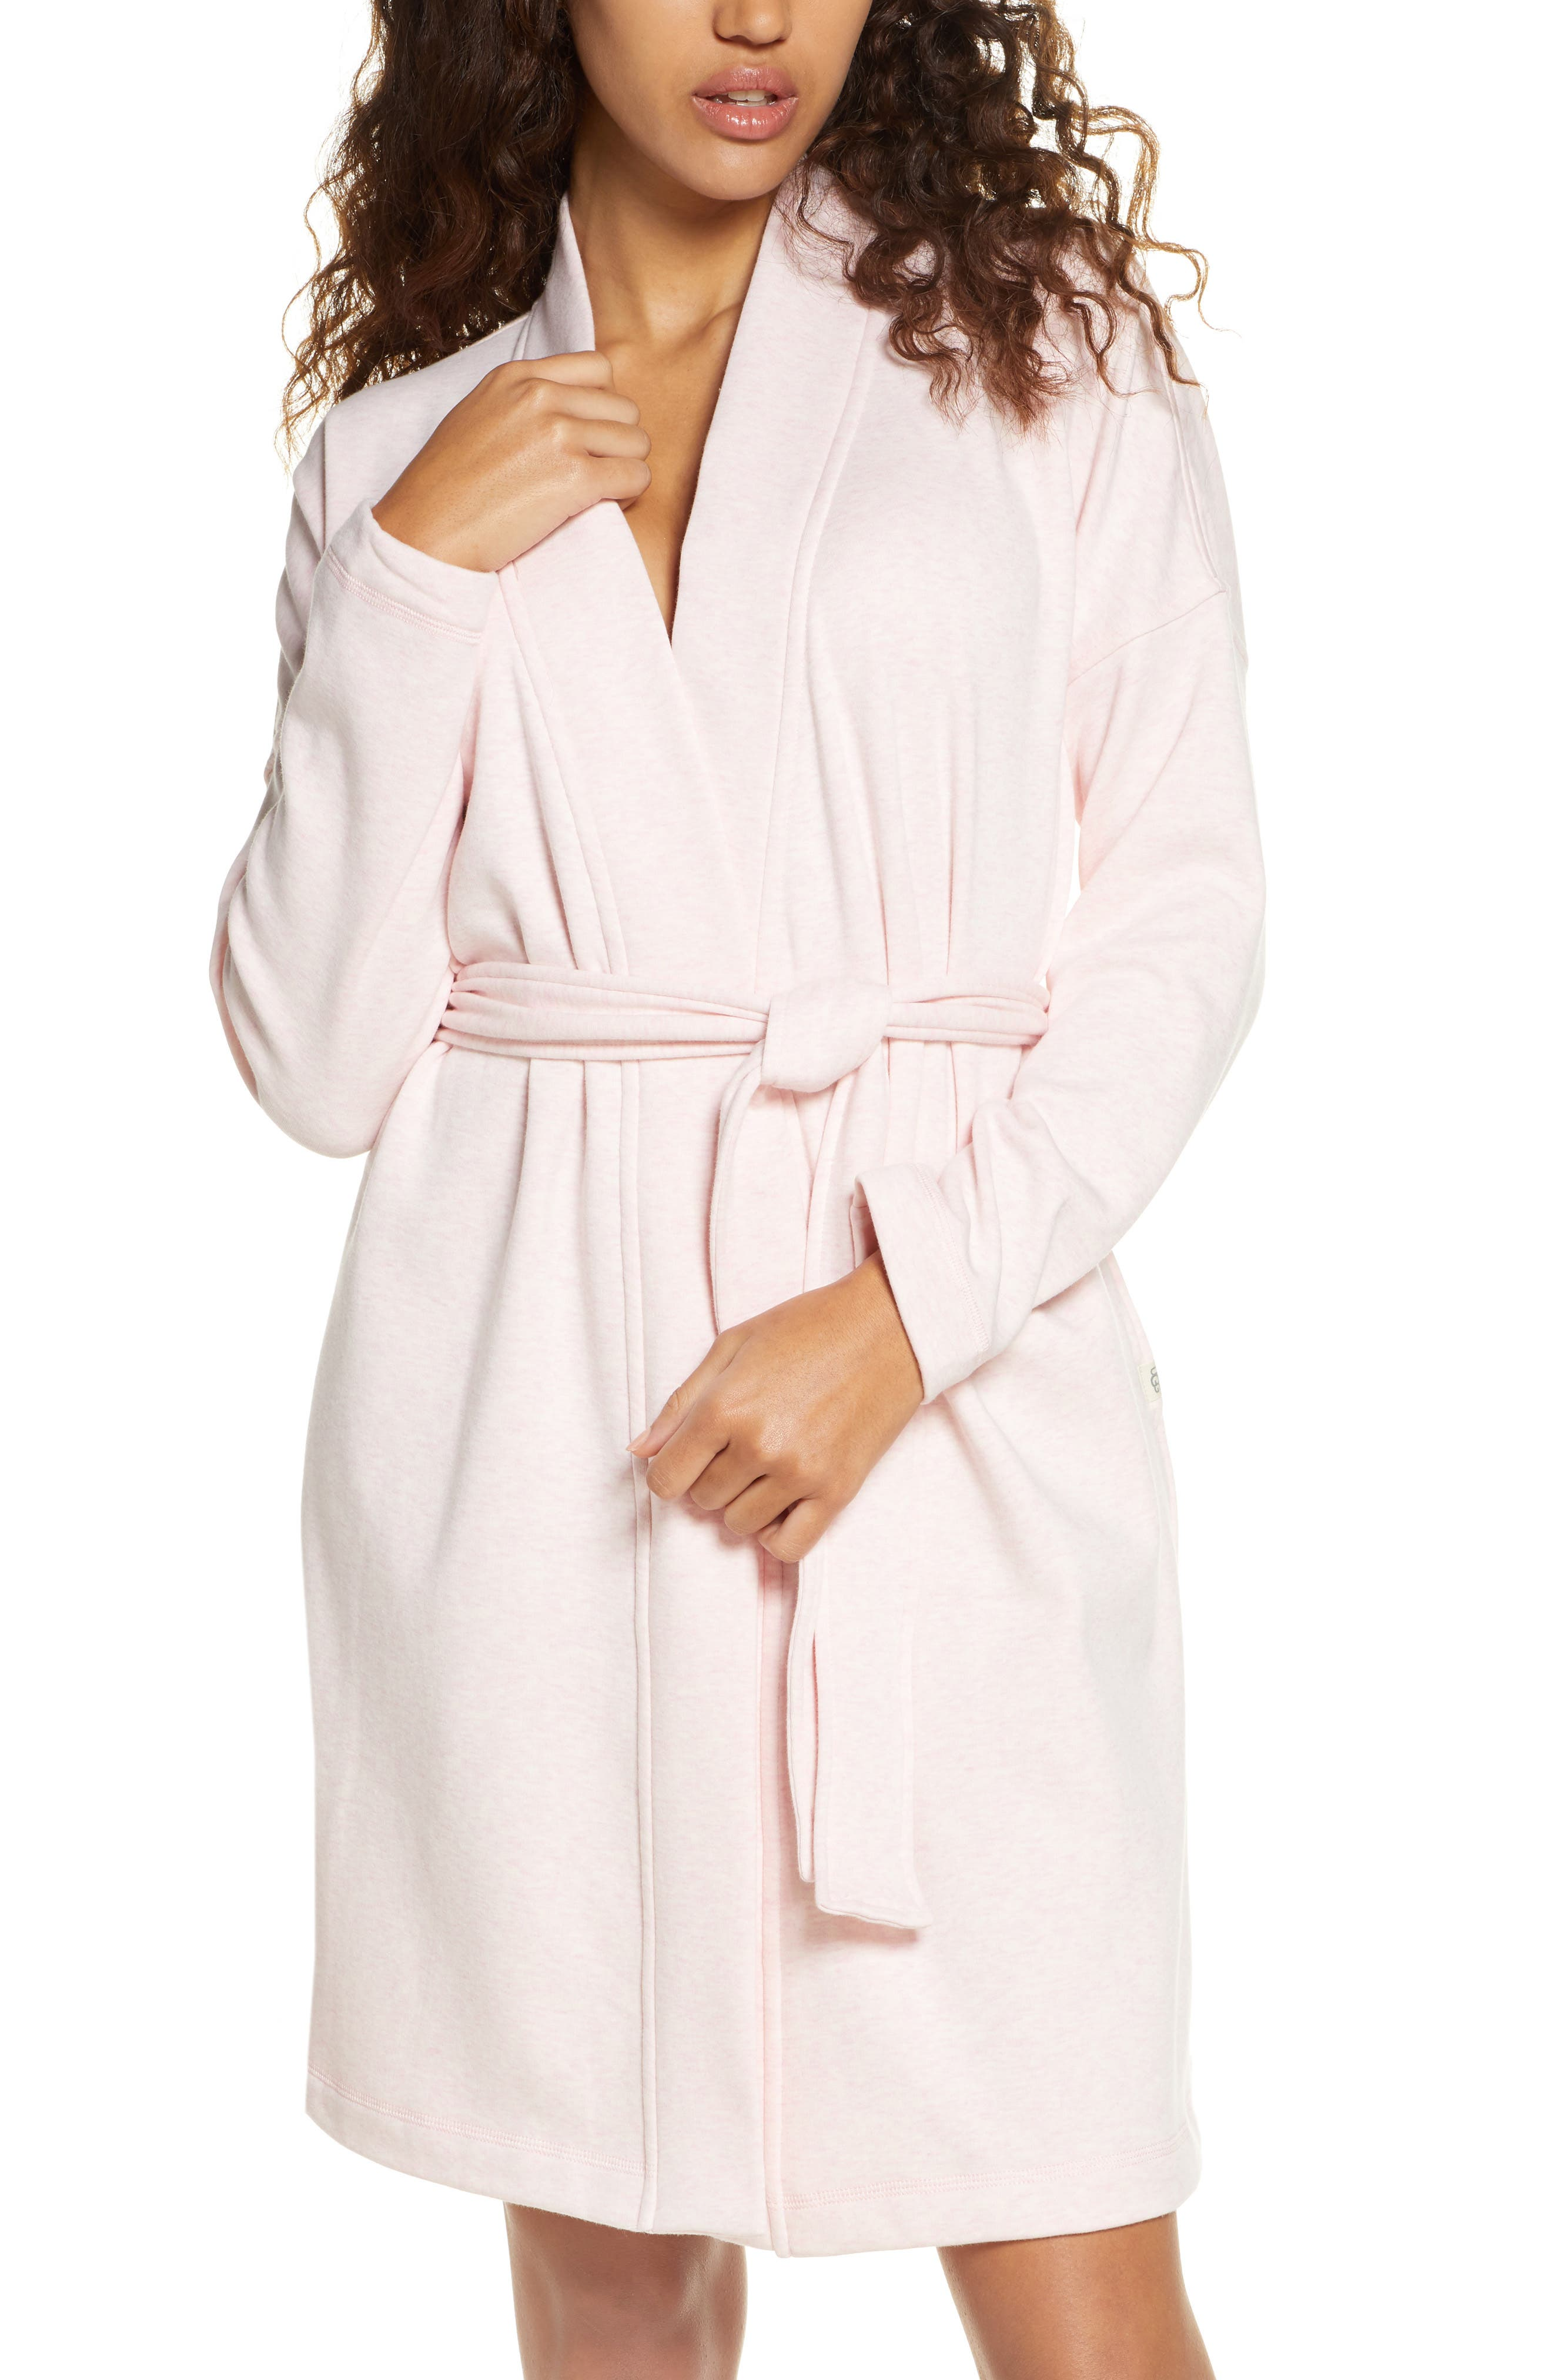 Settle in for the coziest evening in this stretchy cotton fleece robe cut with comfy dropped shoulders and extra-large front pockets. Style Name: UGG Braelyn Ii Robe. Style Number: 5983347. Available in stores.